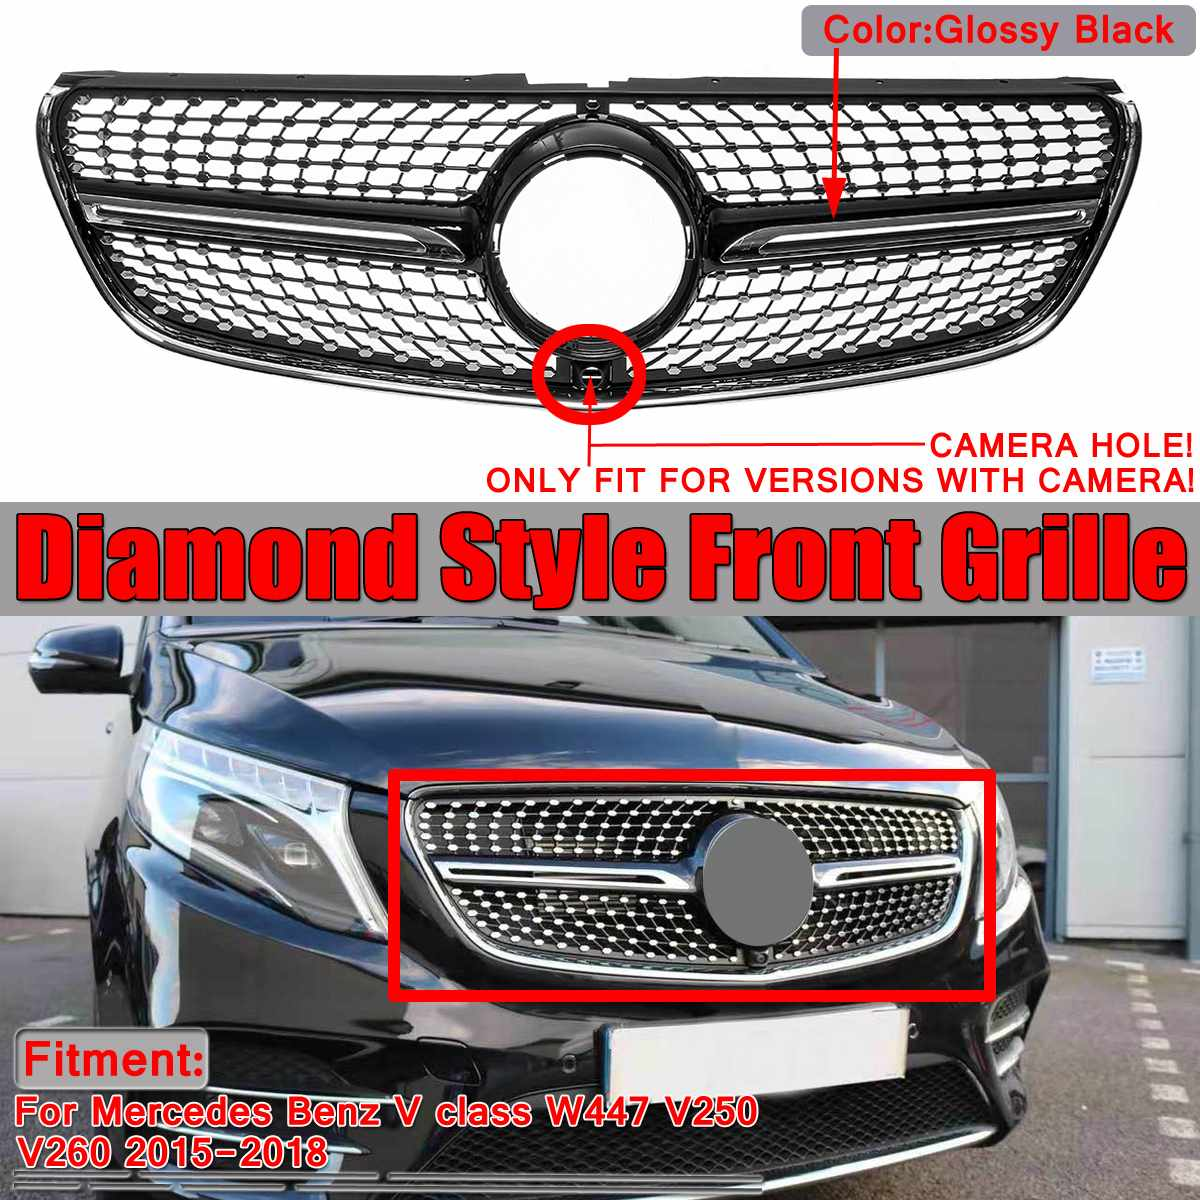 Diamond Grill Mesh W447 Car Front Grille Grill With Camera For Mercedes For Benz V Class W447 V250 V260 2015-2018 Black / Chrome